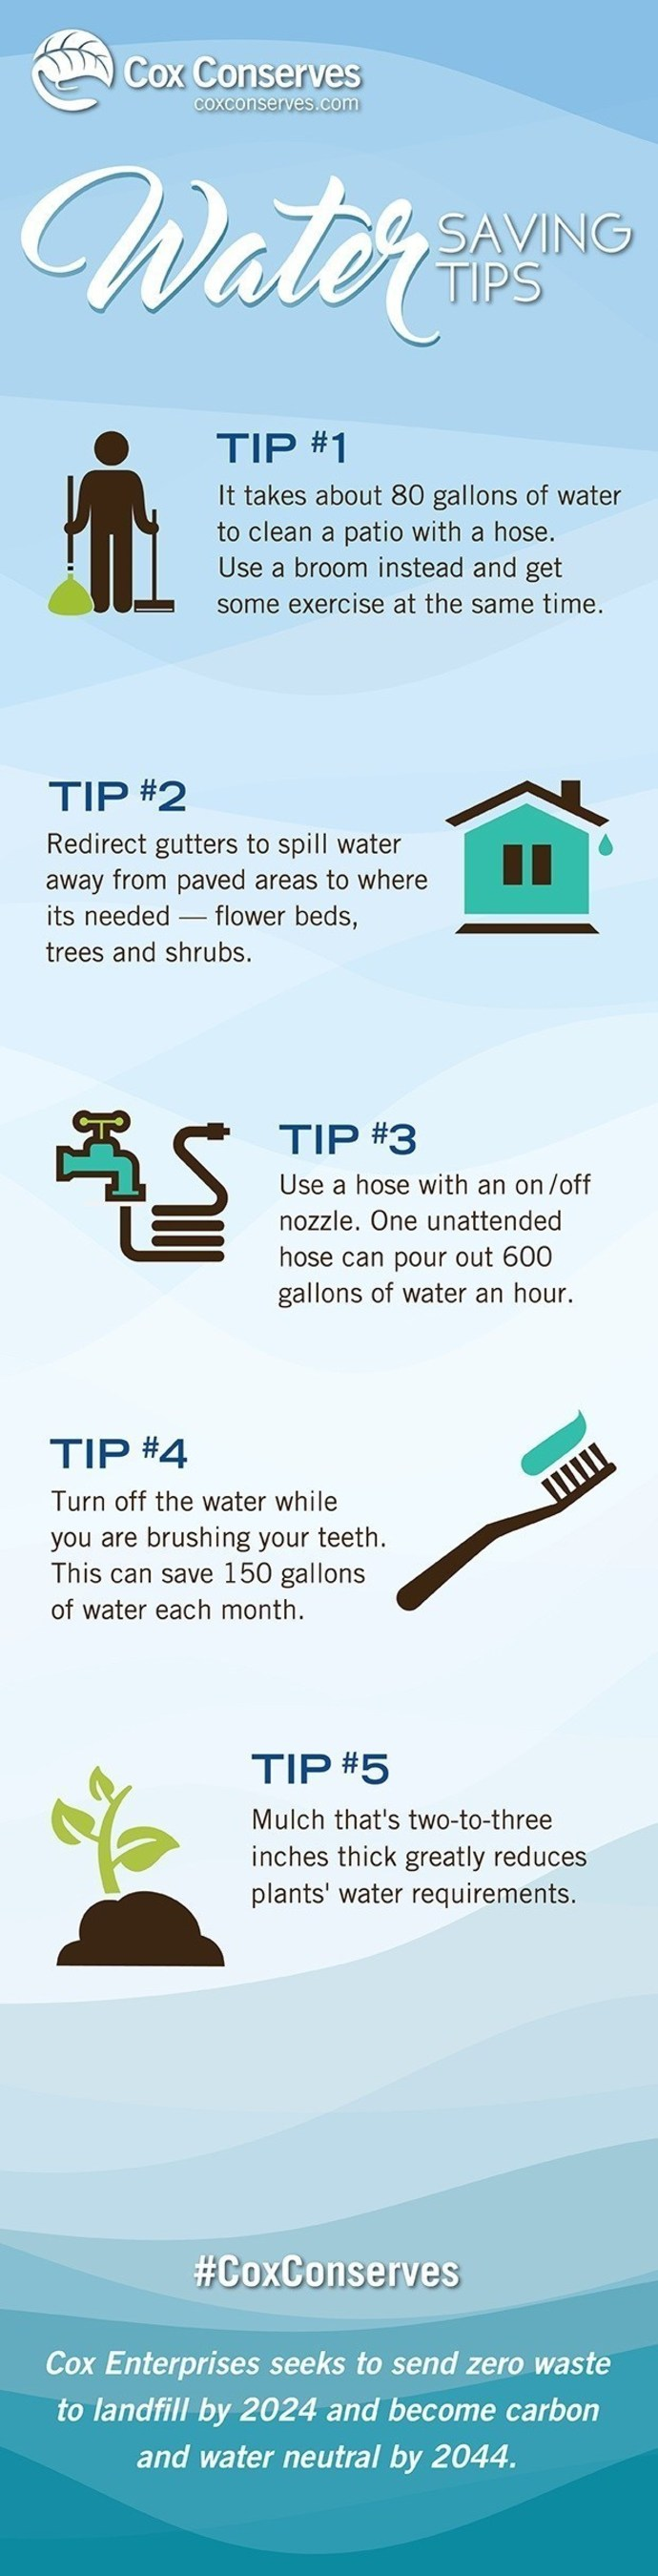 Here are simple tips you can use to conserve water.